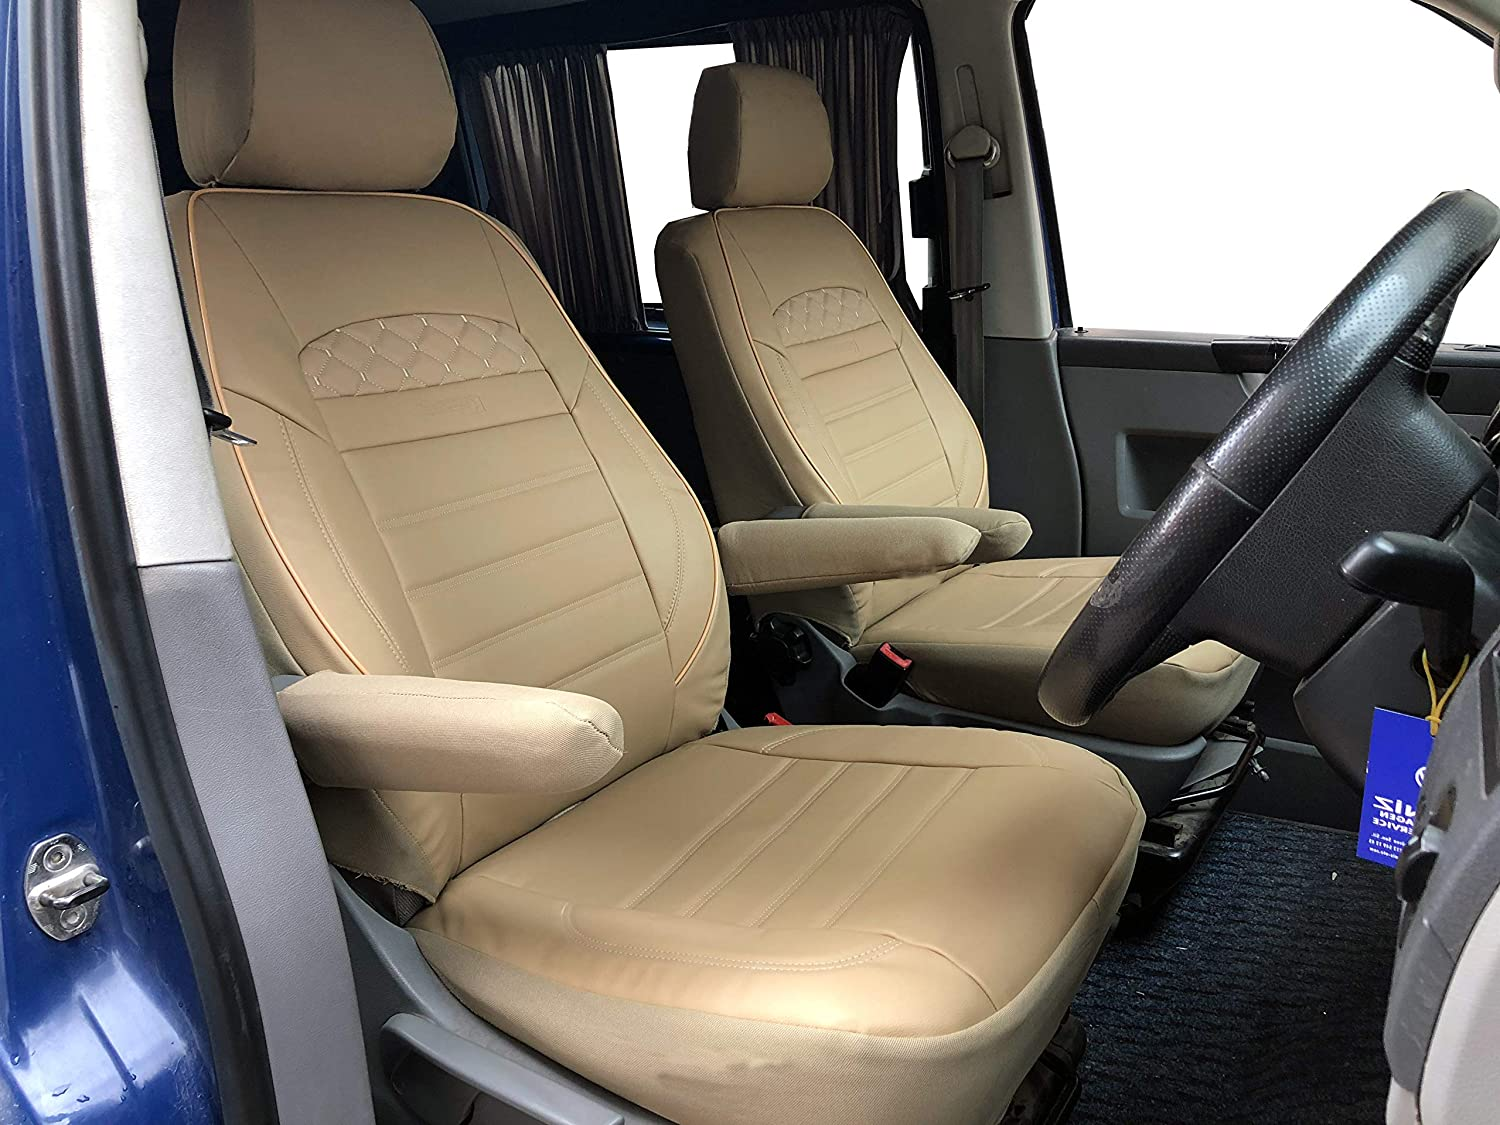 K-maniac seat covers driver and passenger seat armrests design T73 beige automotive protectors leatherette pu pvc leather